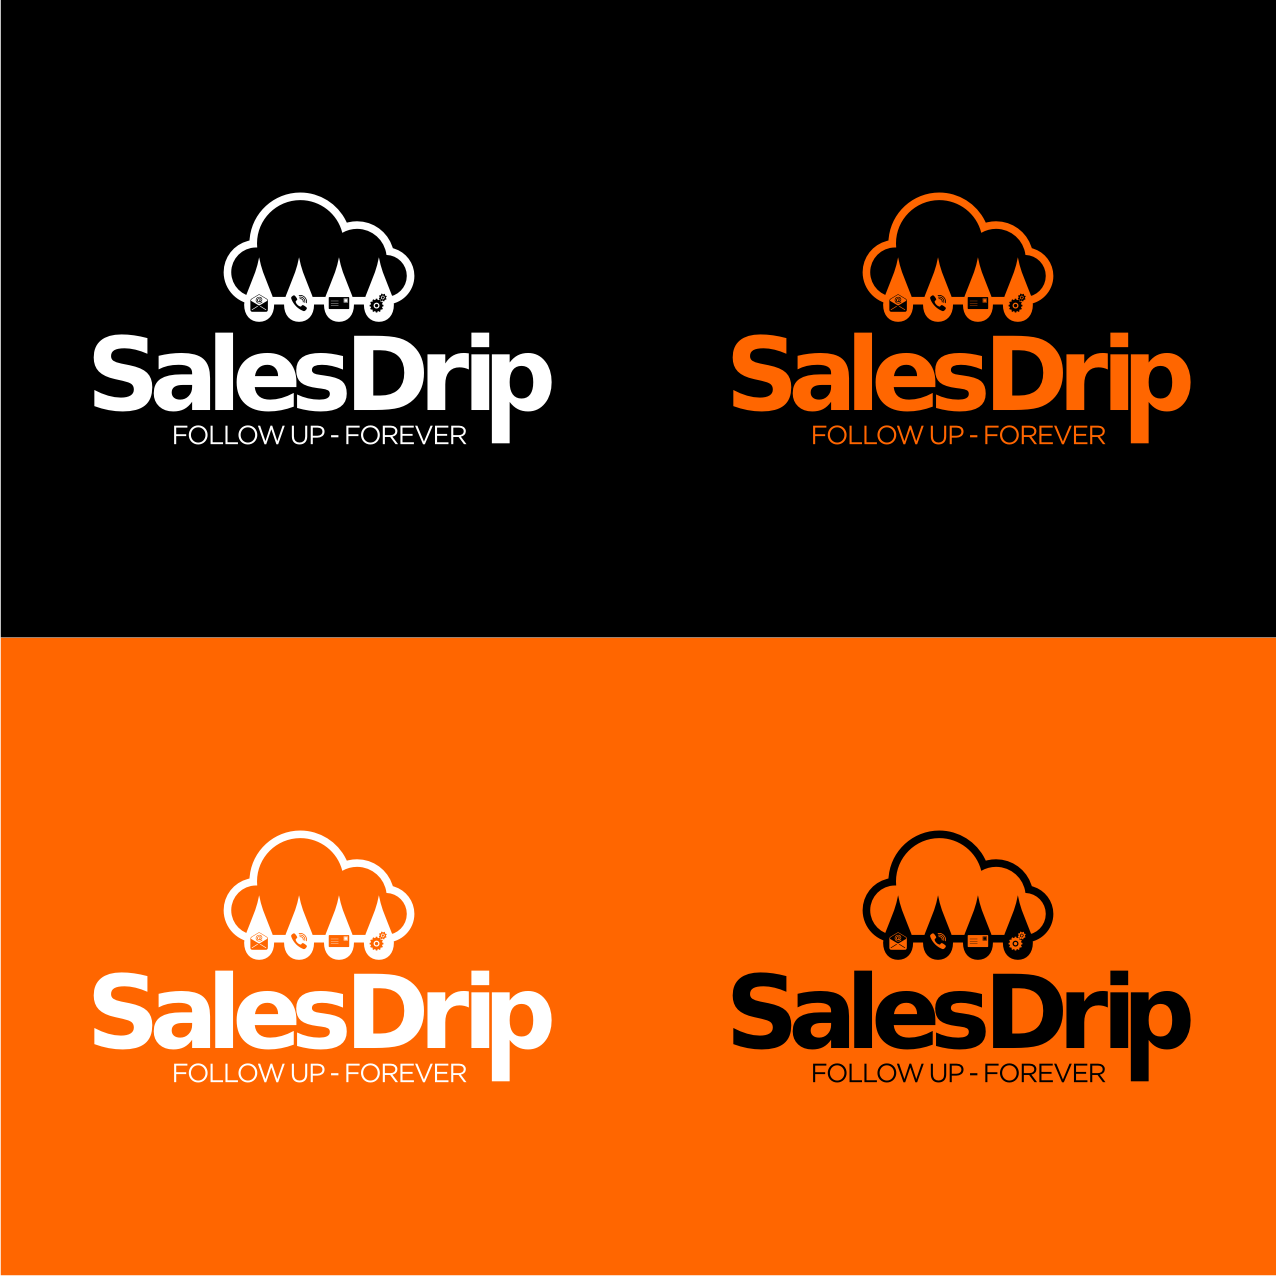 Create a captive logo illustration for Sales Drip